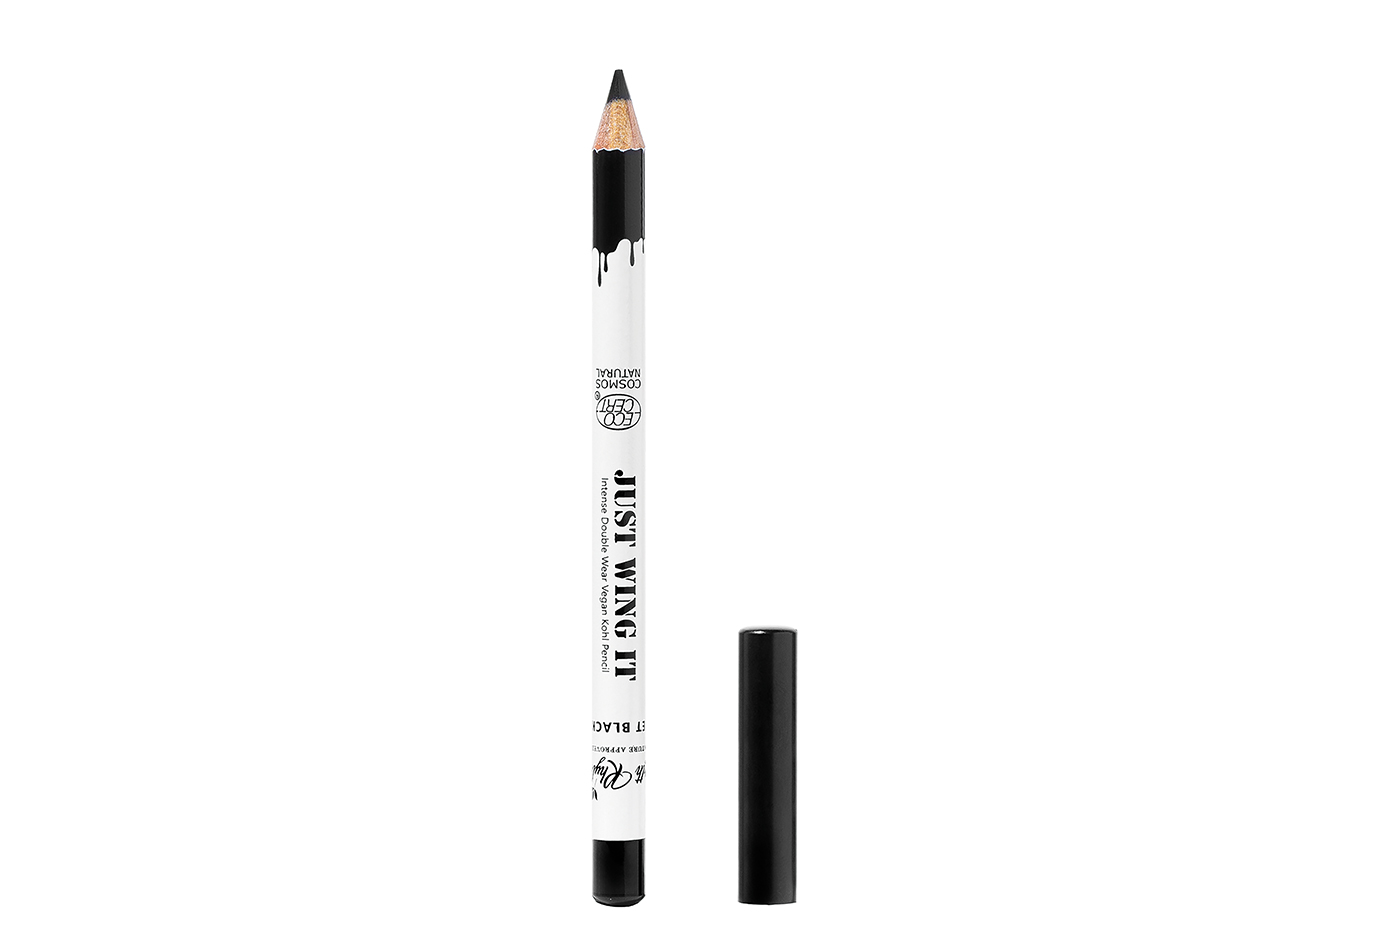 Earth Rhythm launches Ecocert approved kohl pencil